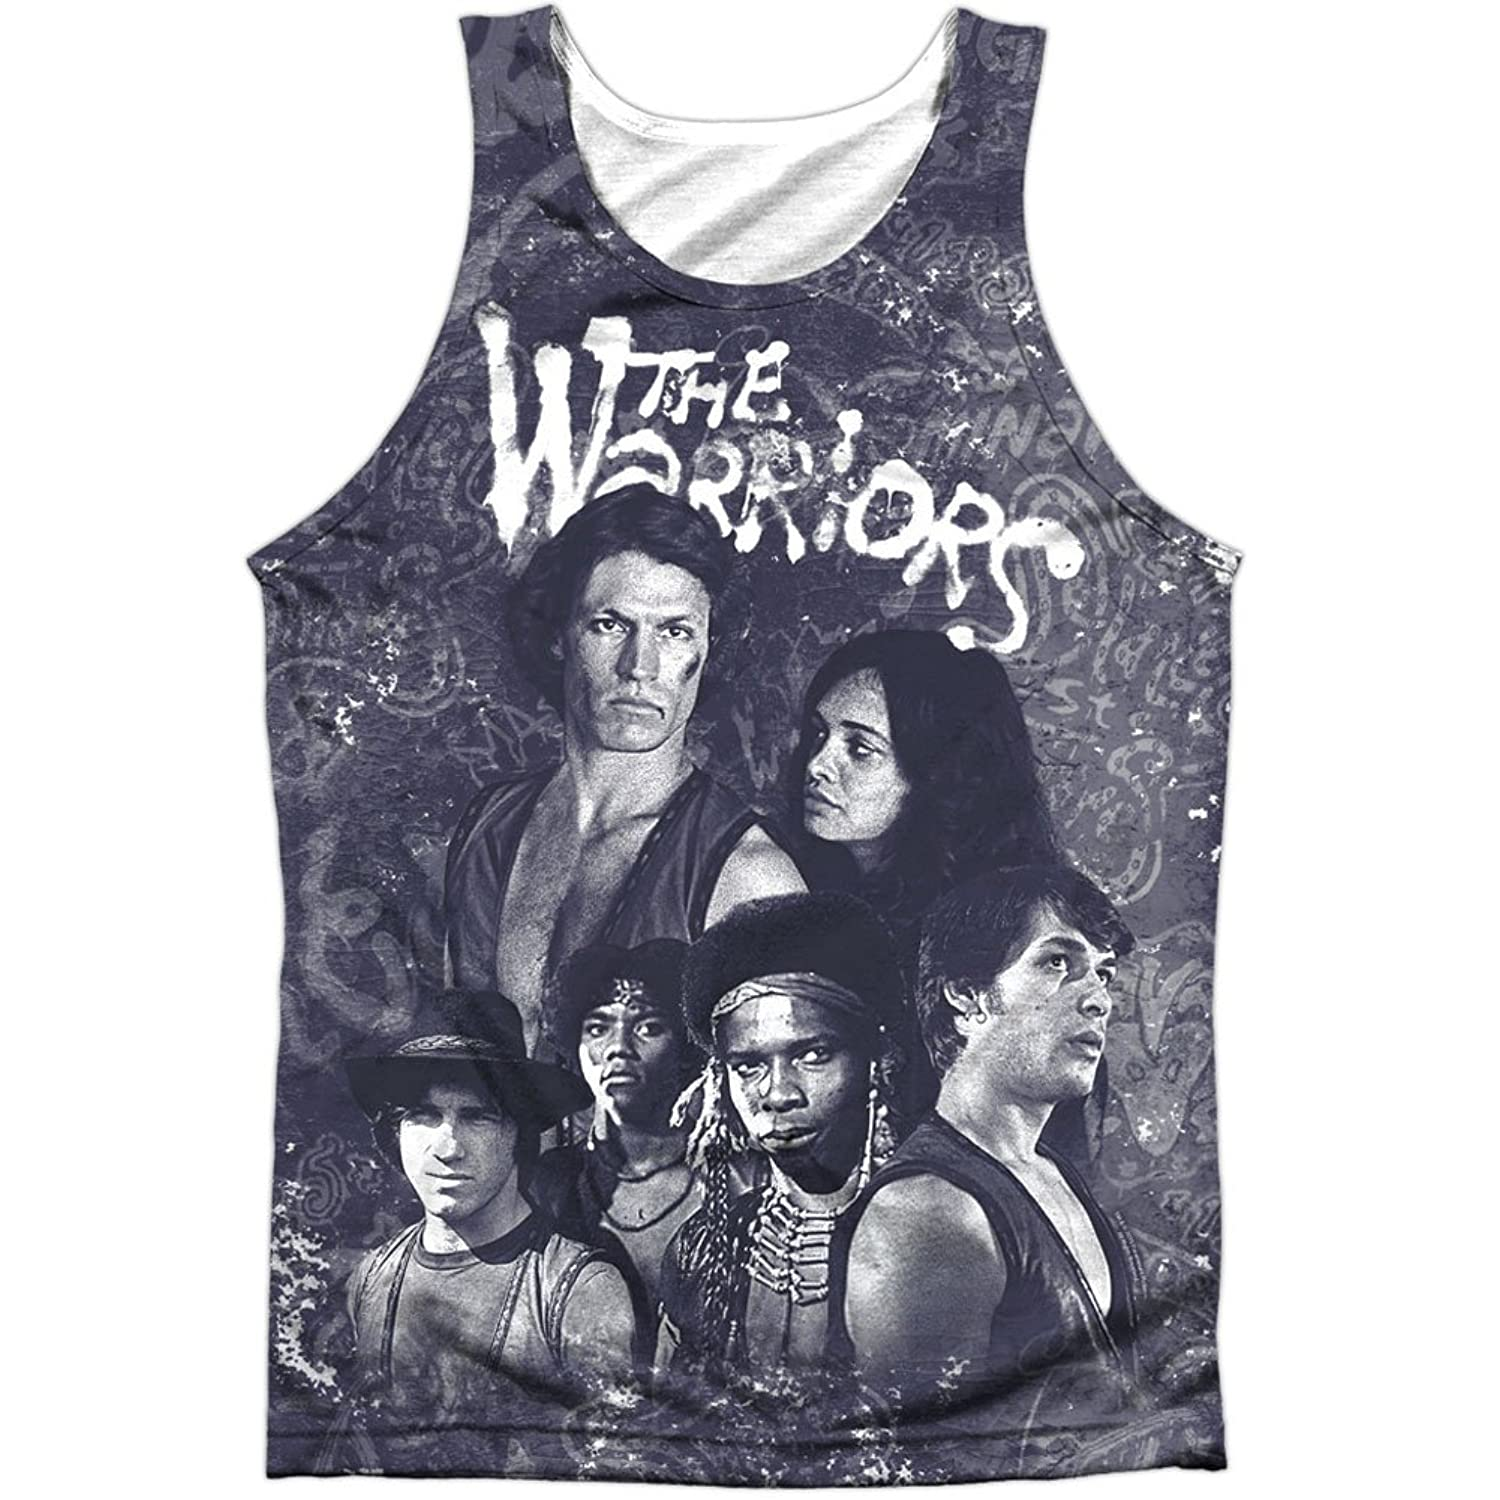 The Warriors New York Gang Thriller Film Cast Collage Front Print Tank Top Shirt